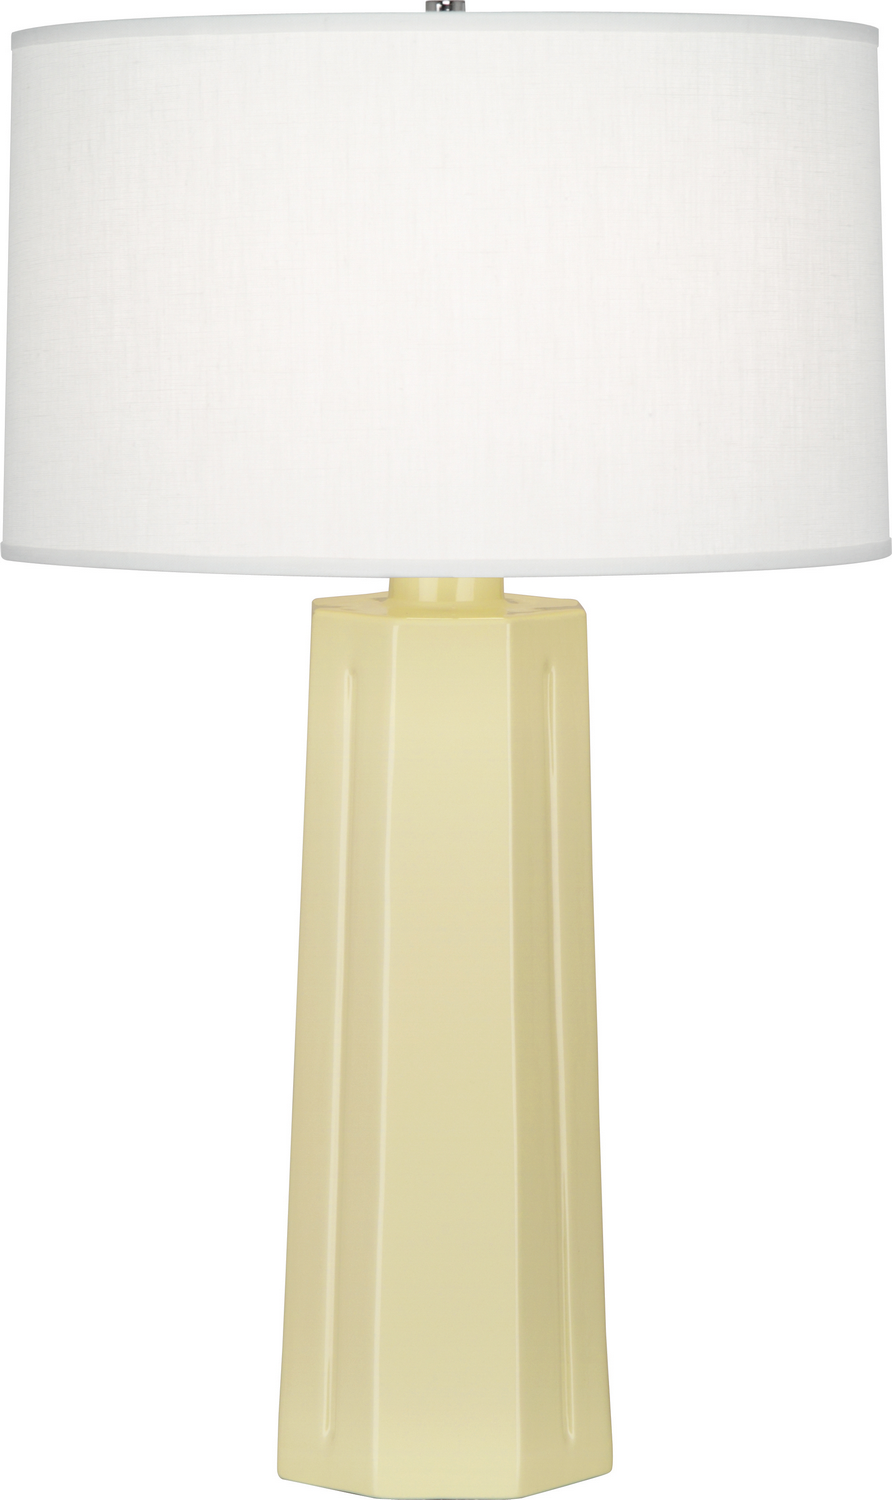 One Light Table Lamp From The Mason Collection By Robert Abbey 970